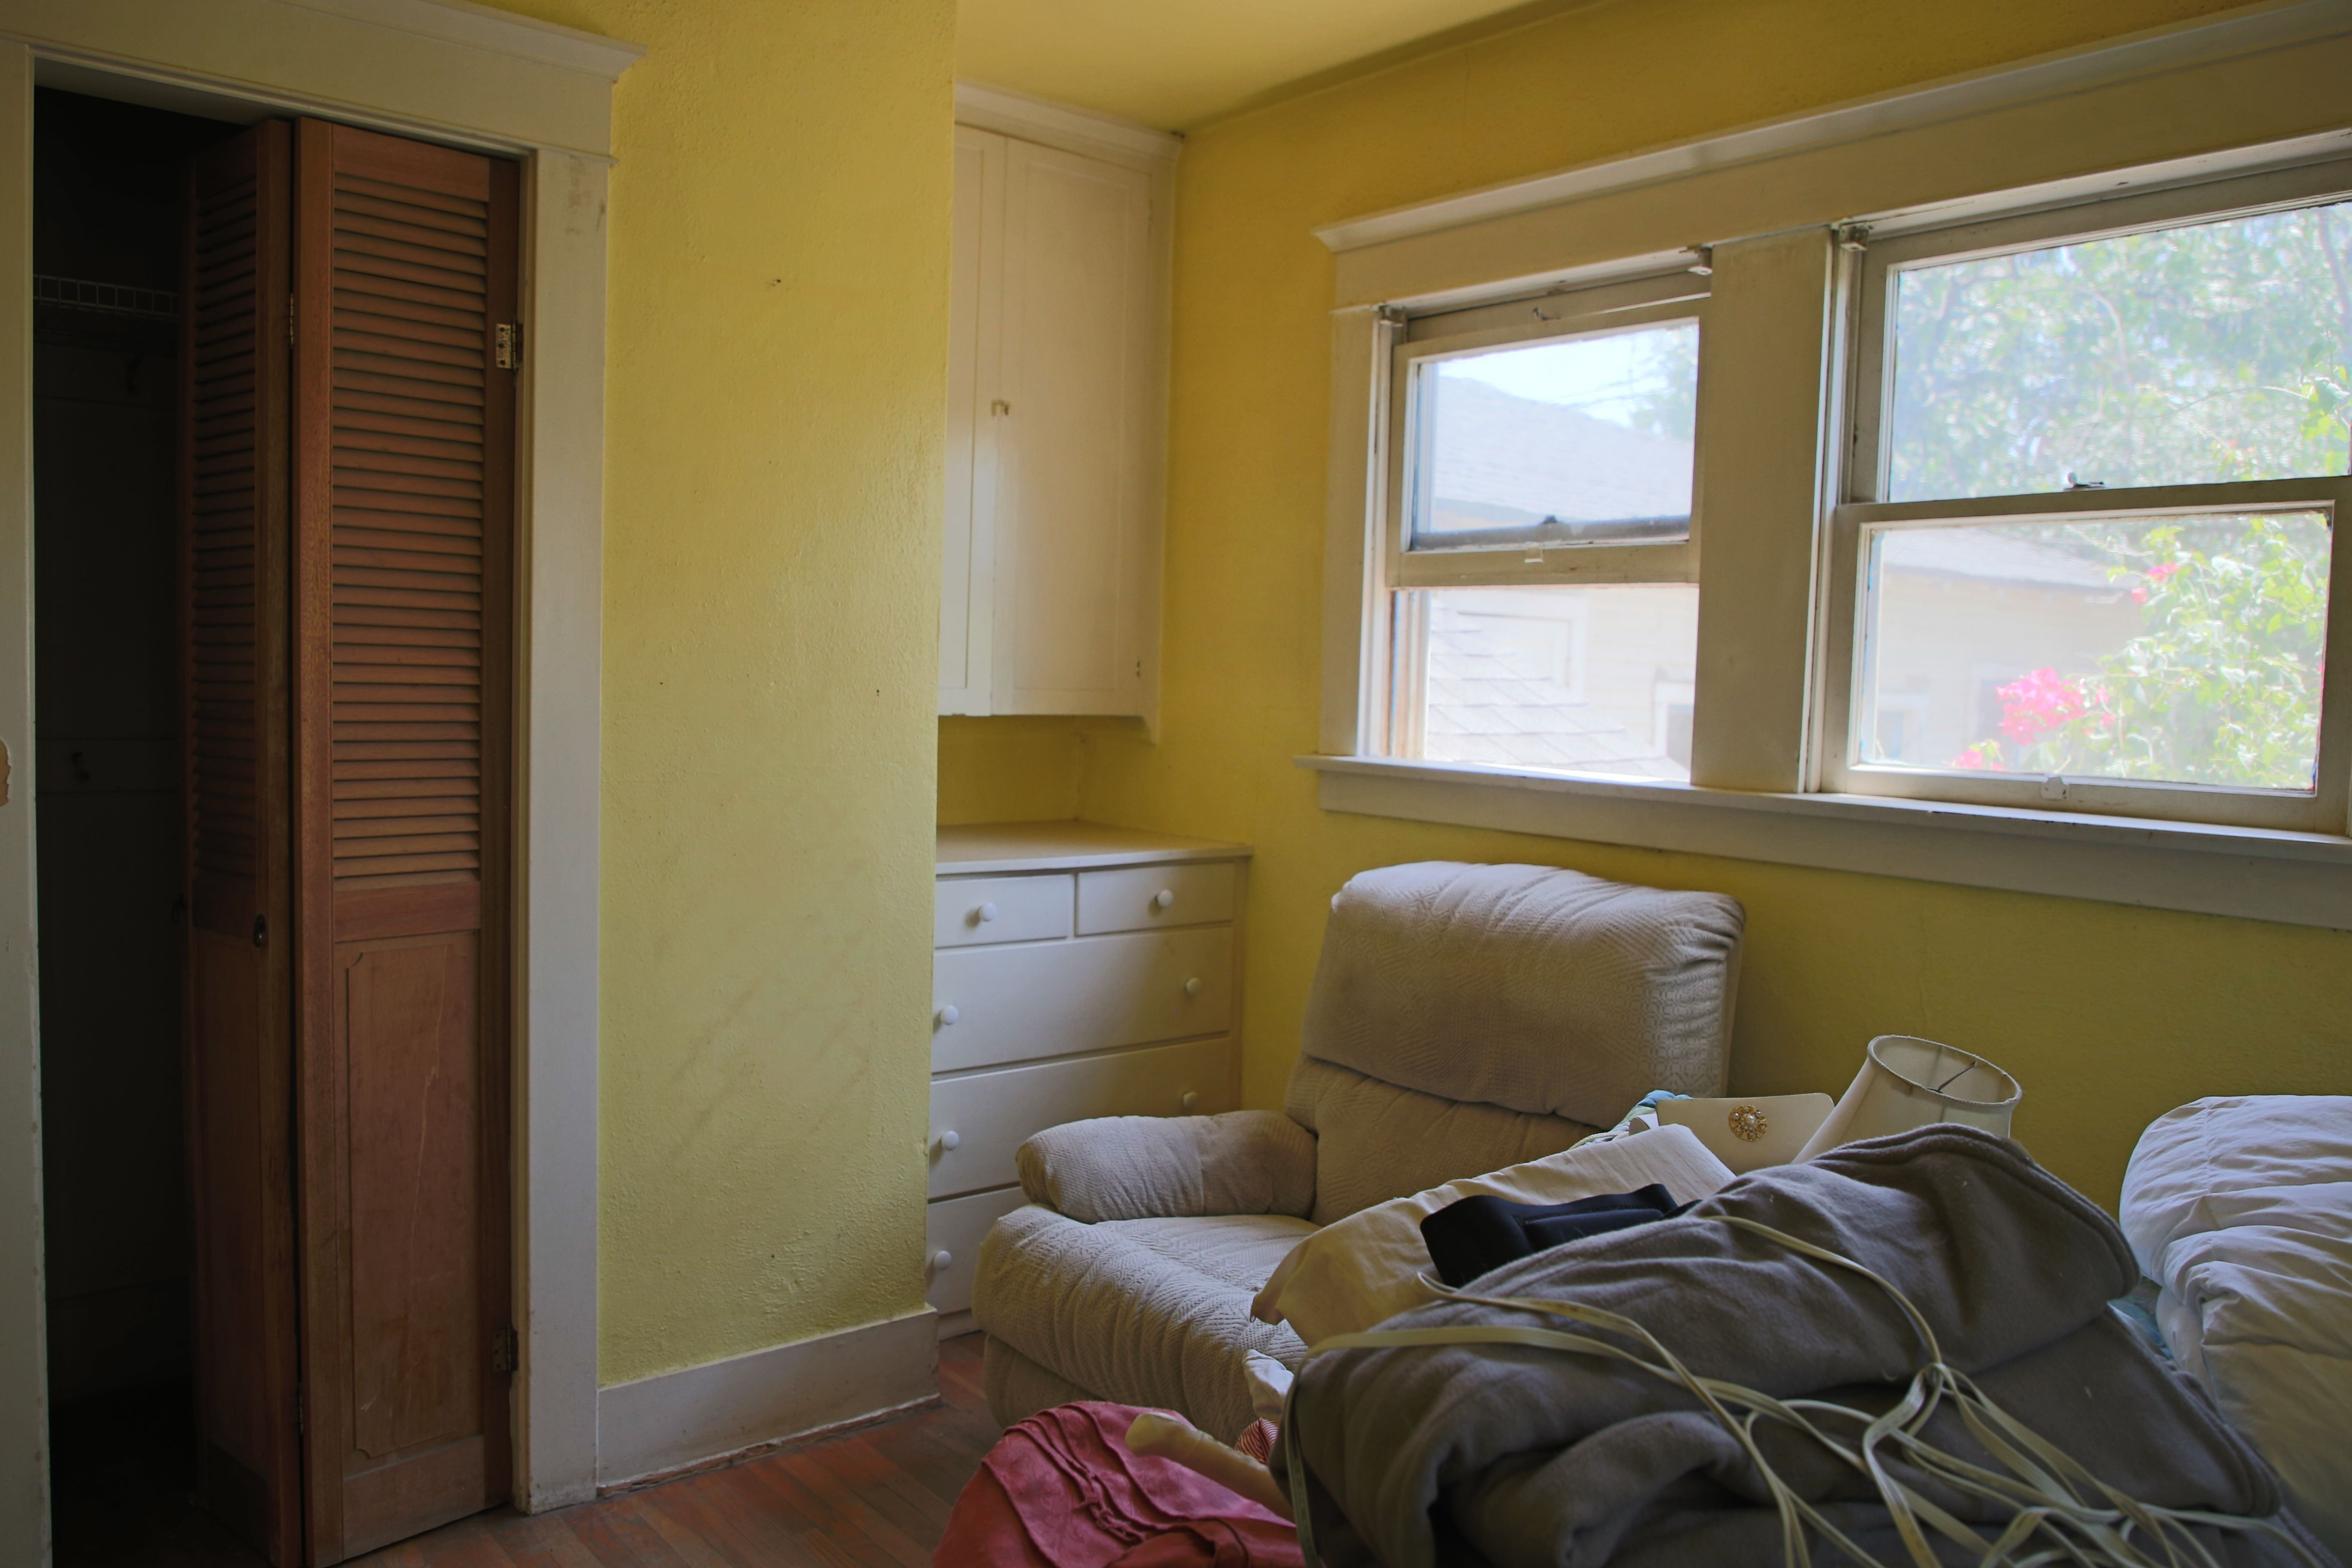 Bedroom #3 with built-in chest of drawers.